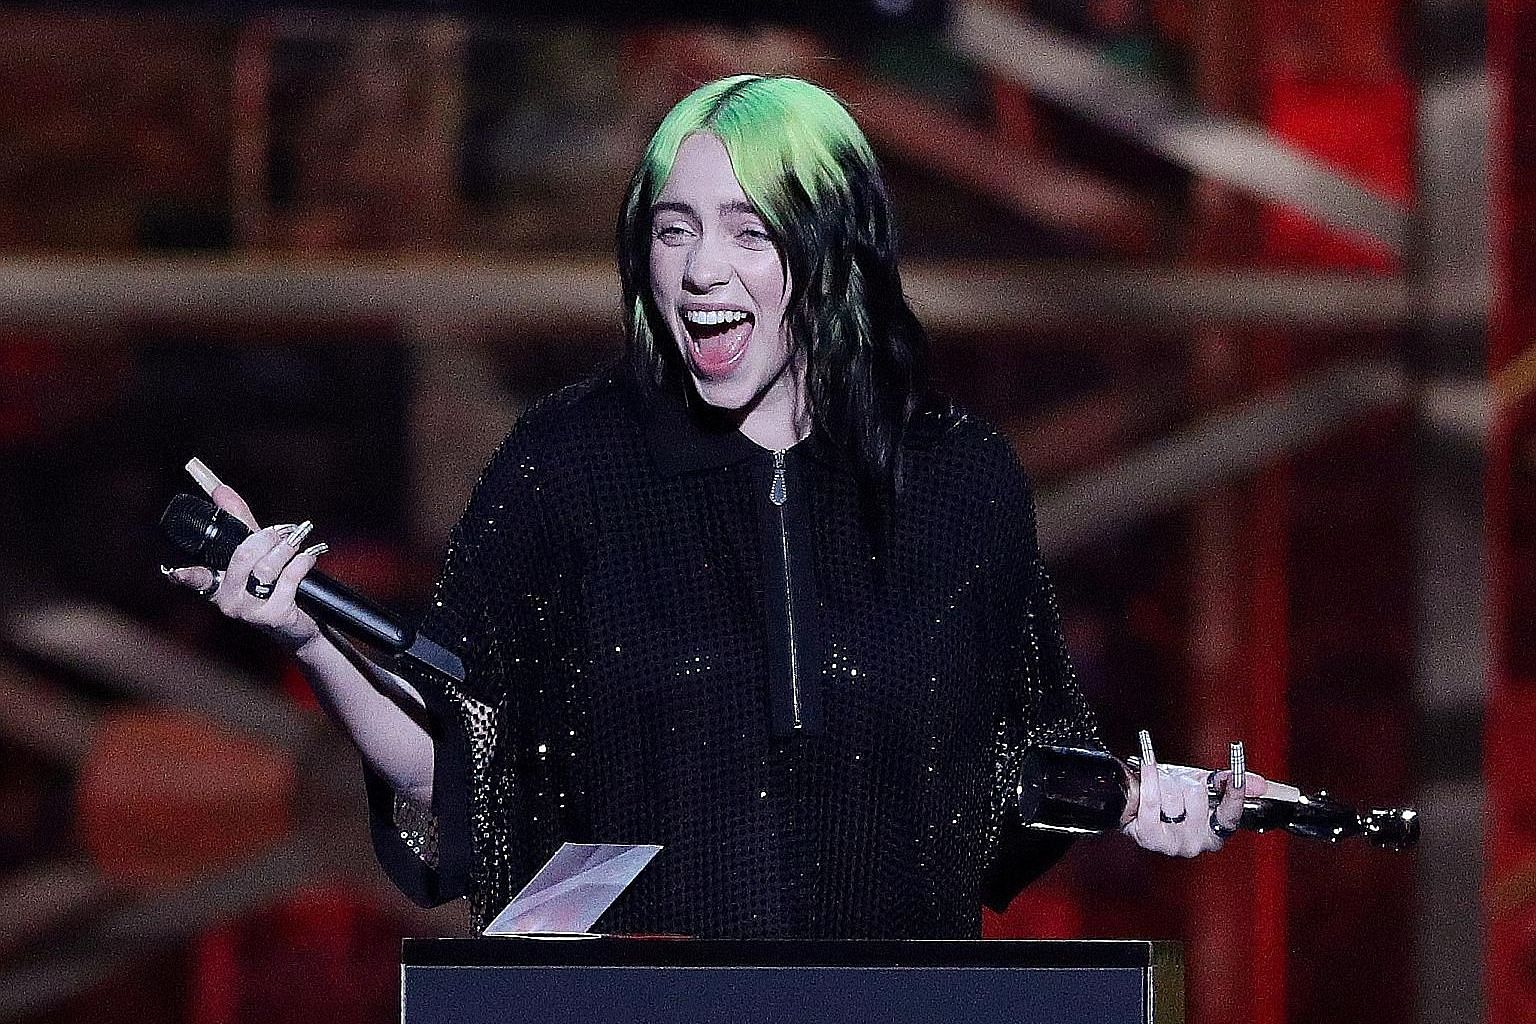 Singer Billie Eilish receiving the award for International Female Solo Artist at the Brit Awards in London last month.